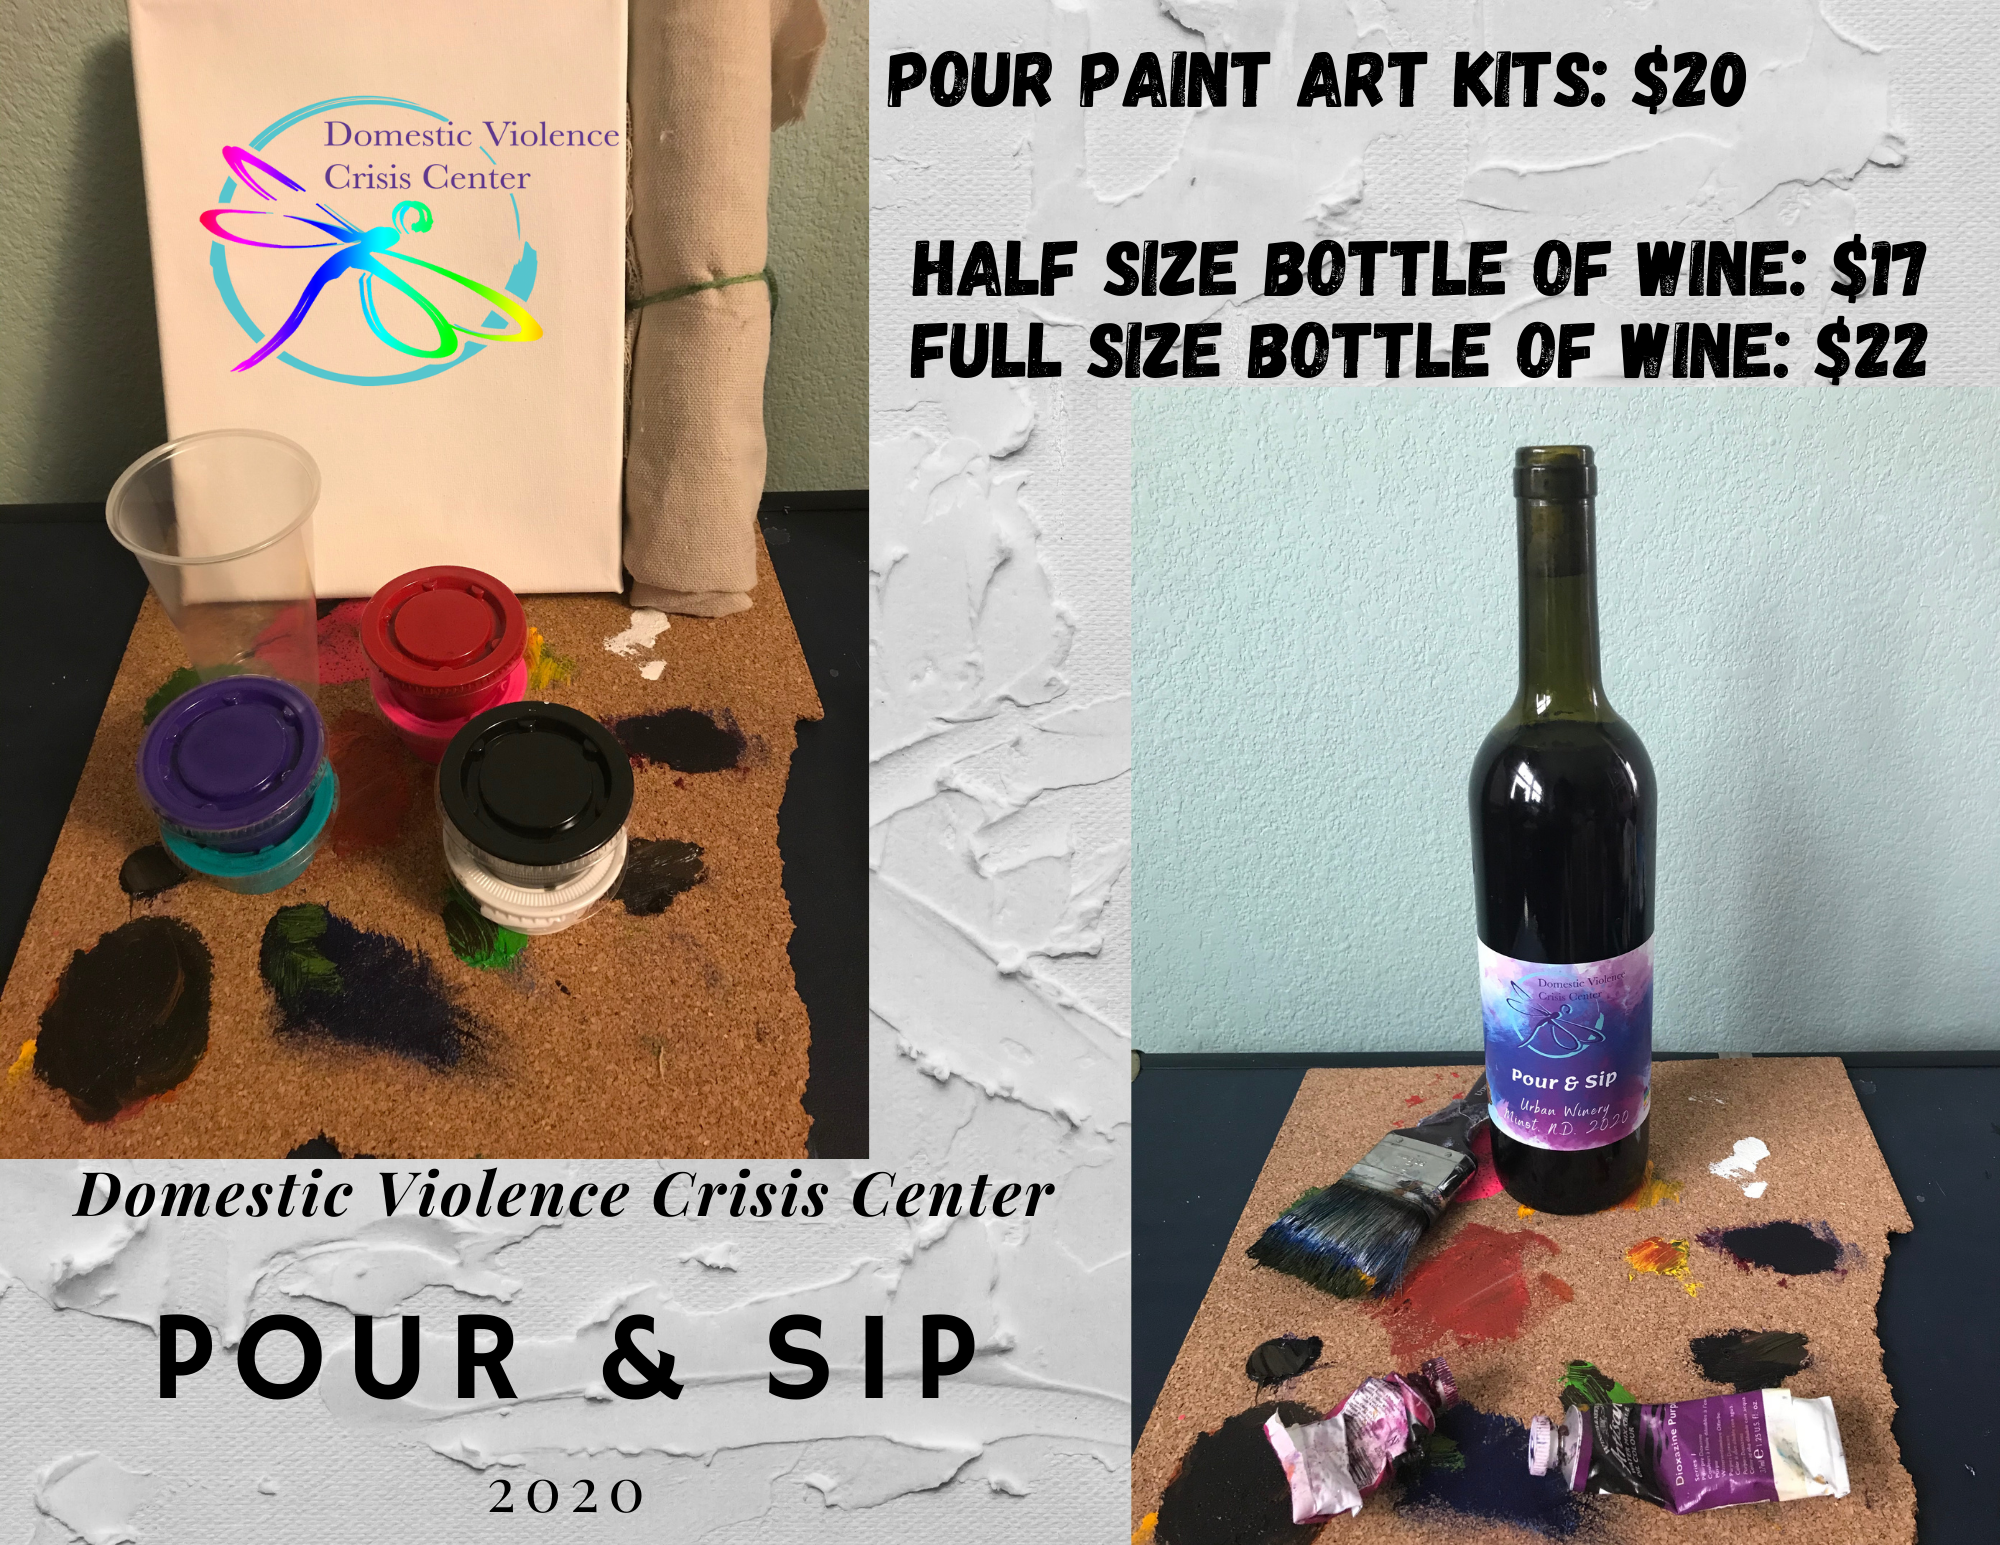 Pour & Sip Wine and Art Kit Fundraiser